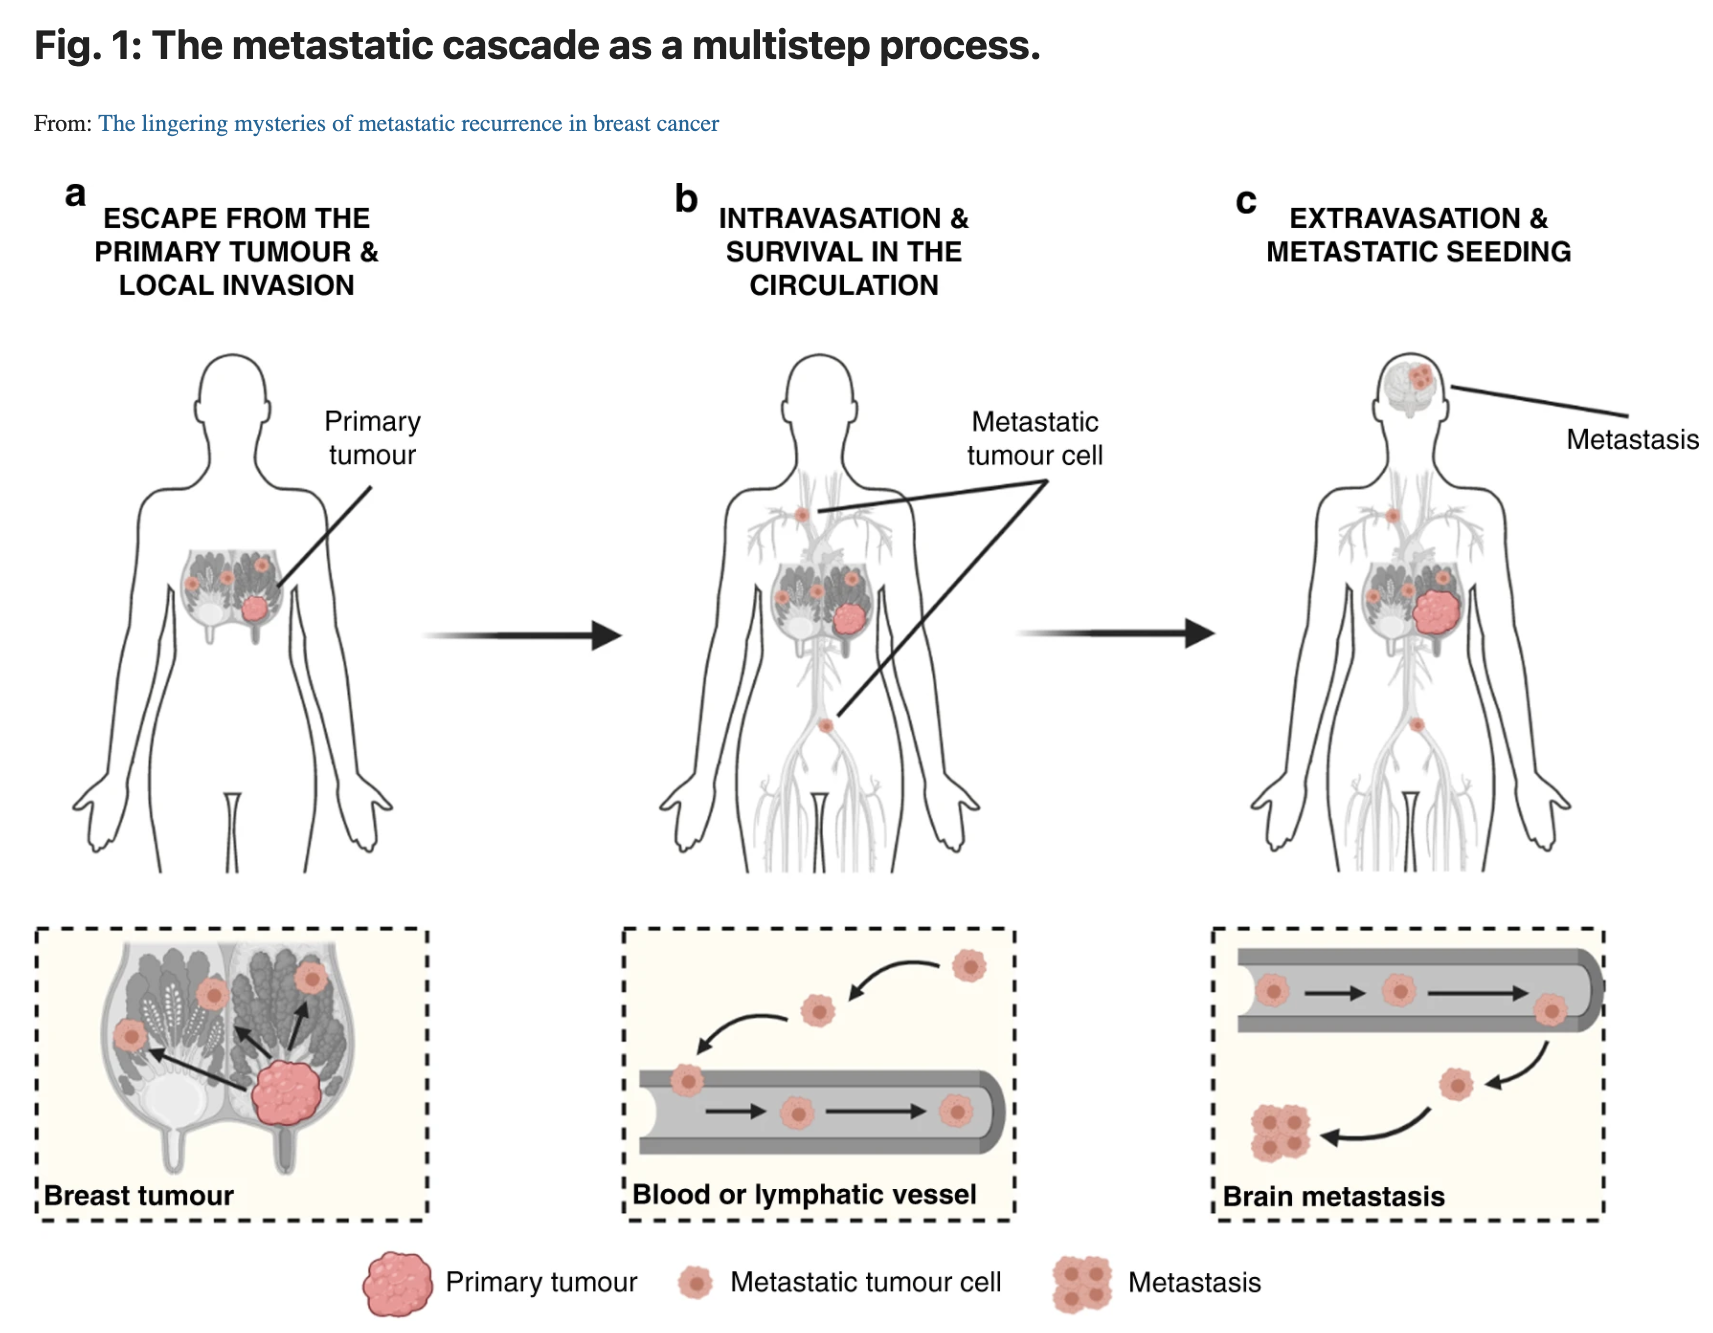 Illustration of metastatic process from article